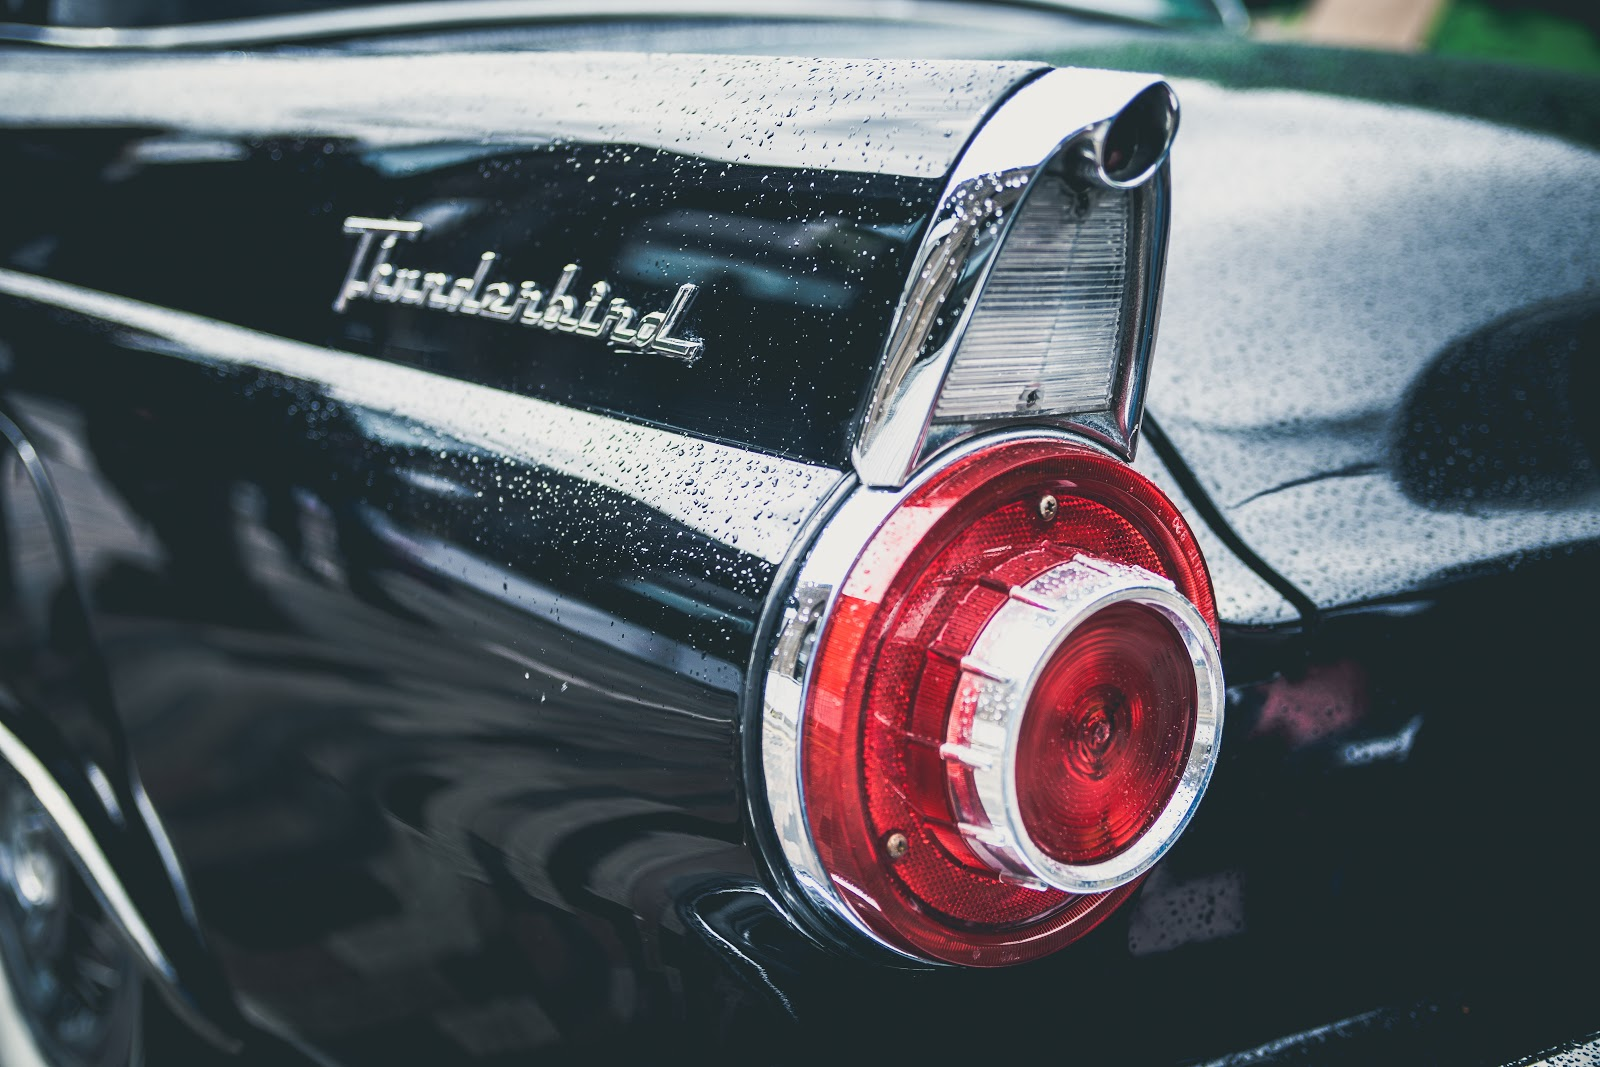 Thunderbird car washing